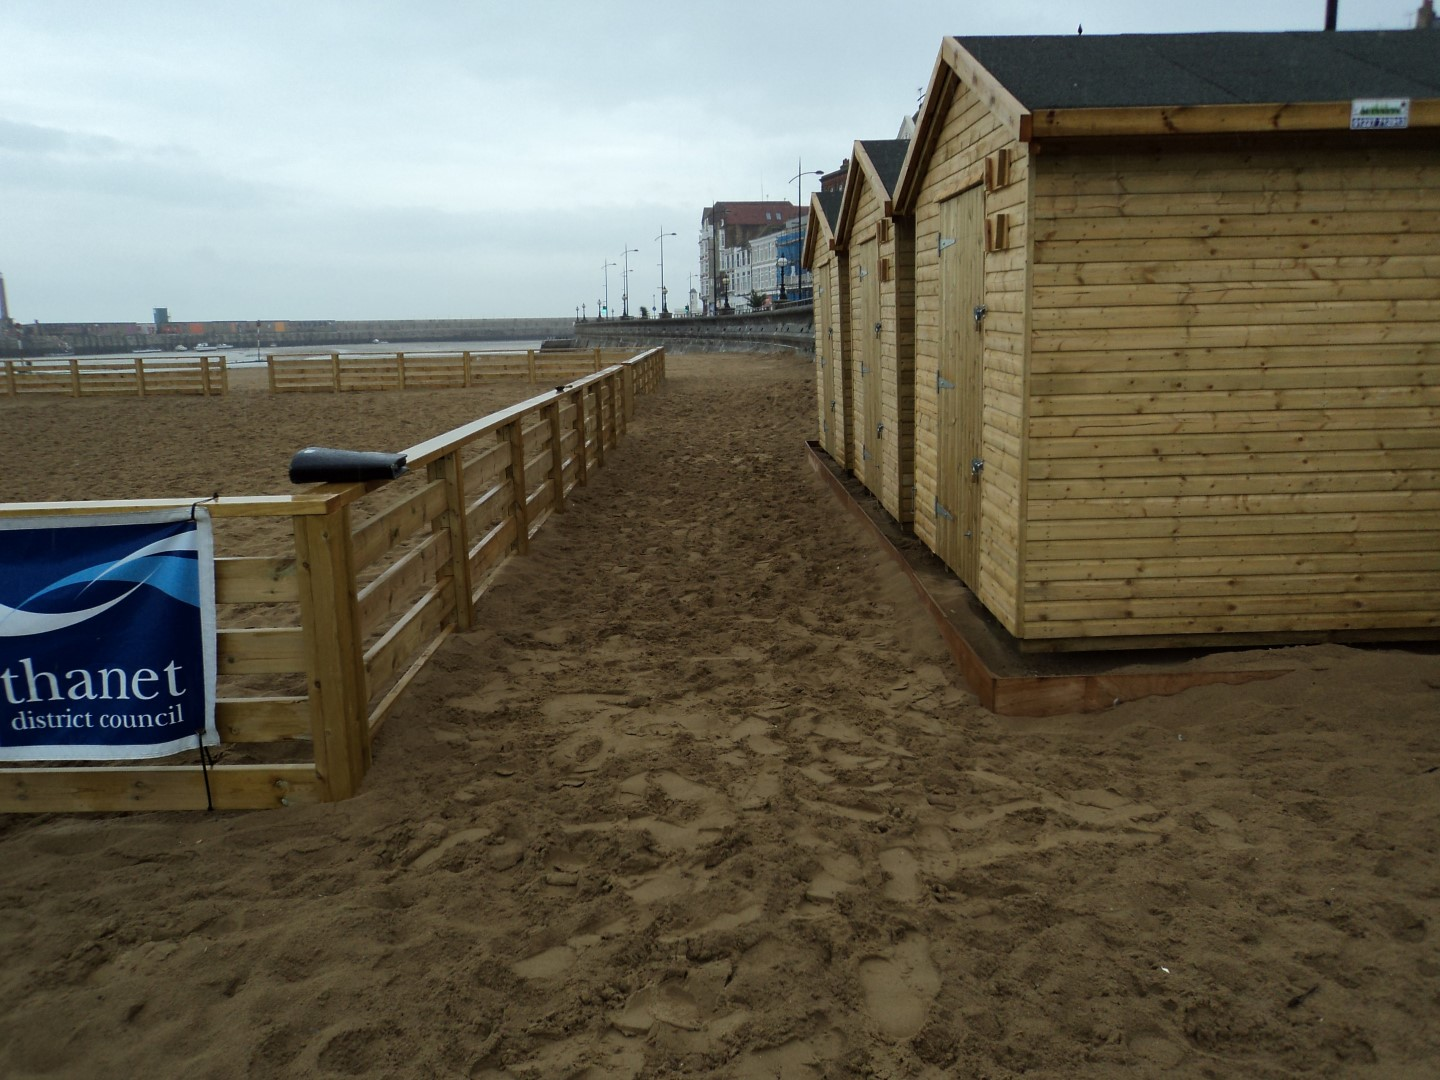 Thanet council volley ball court and changing rooms